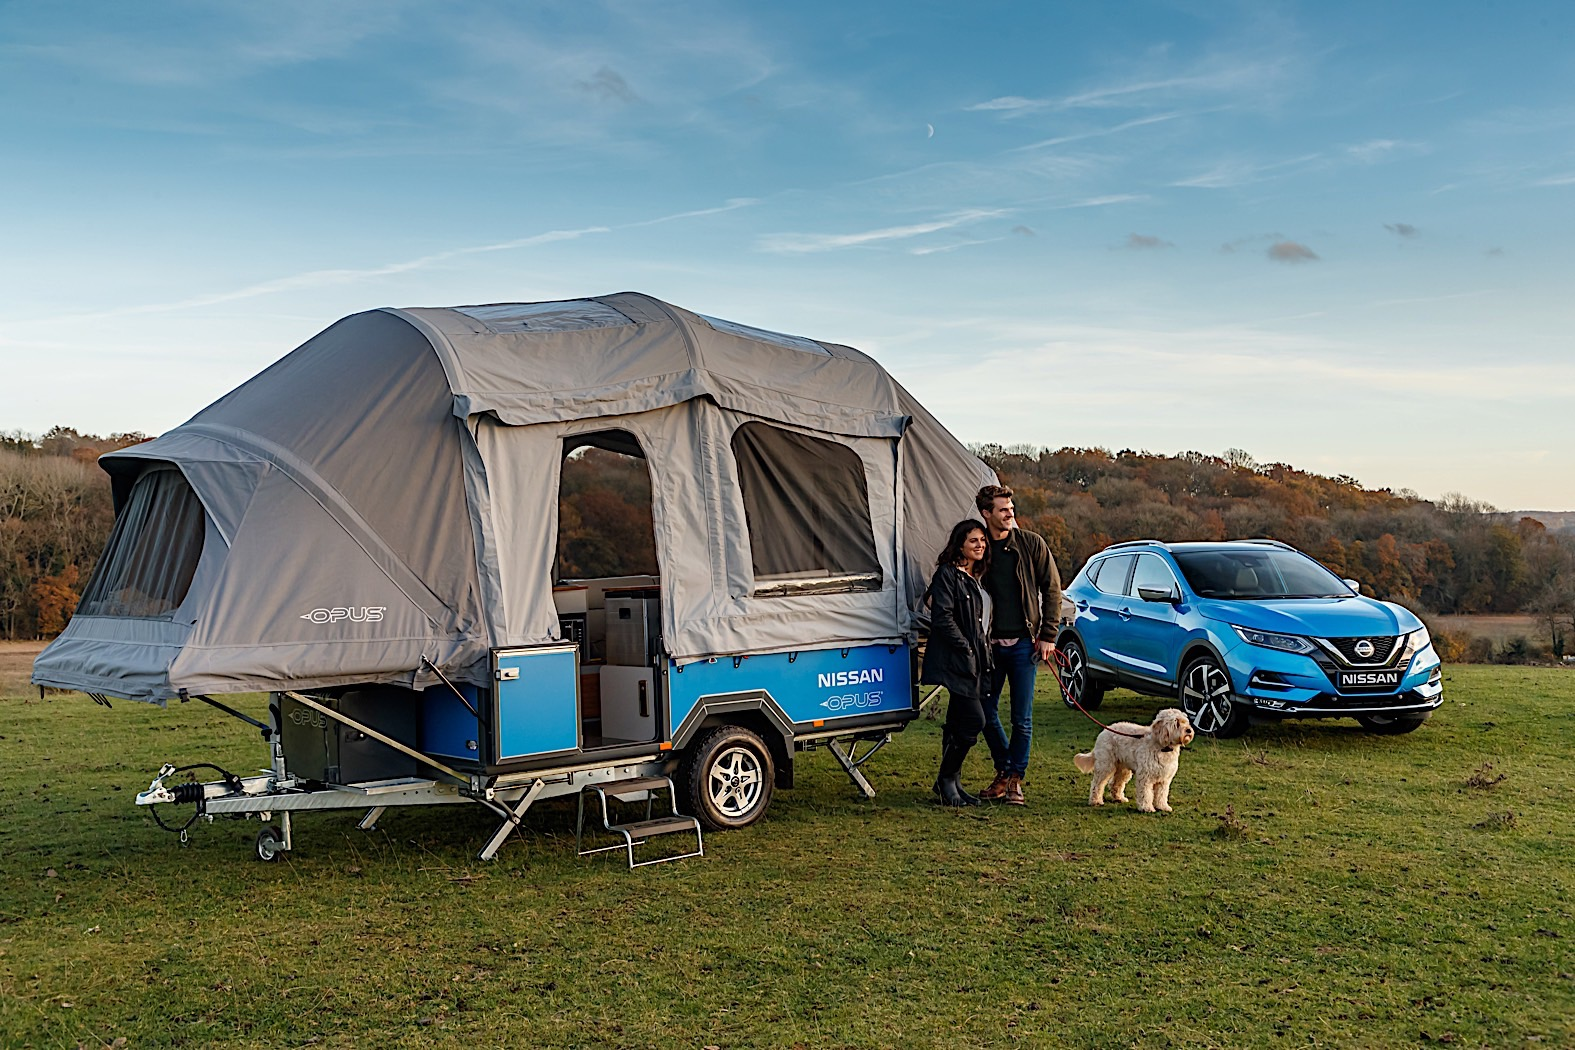 nissan-x-opus-camper-concept-is-powered-by-second-life-leaf-batteries-132400_1